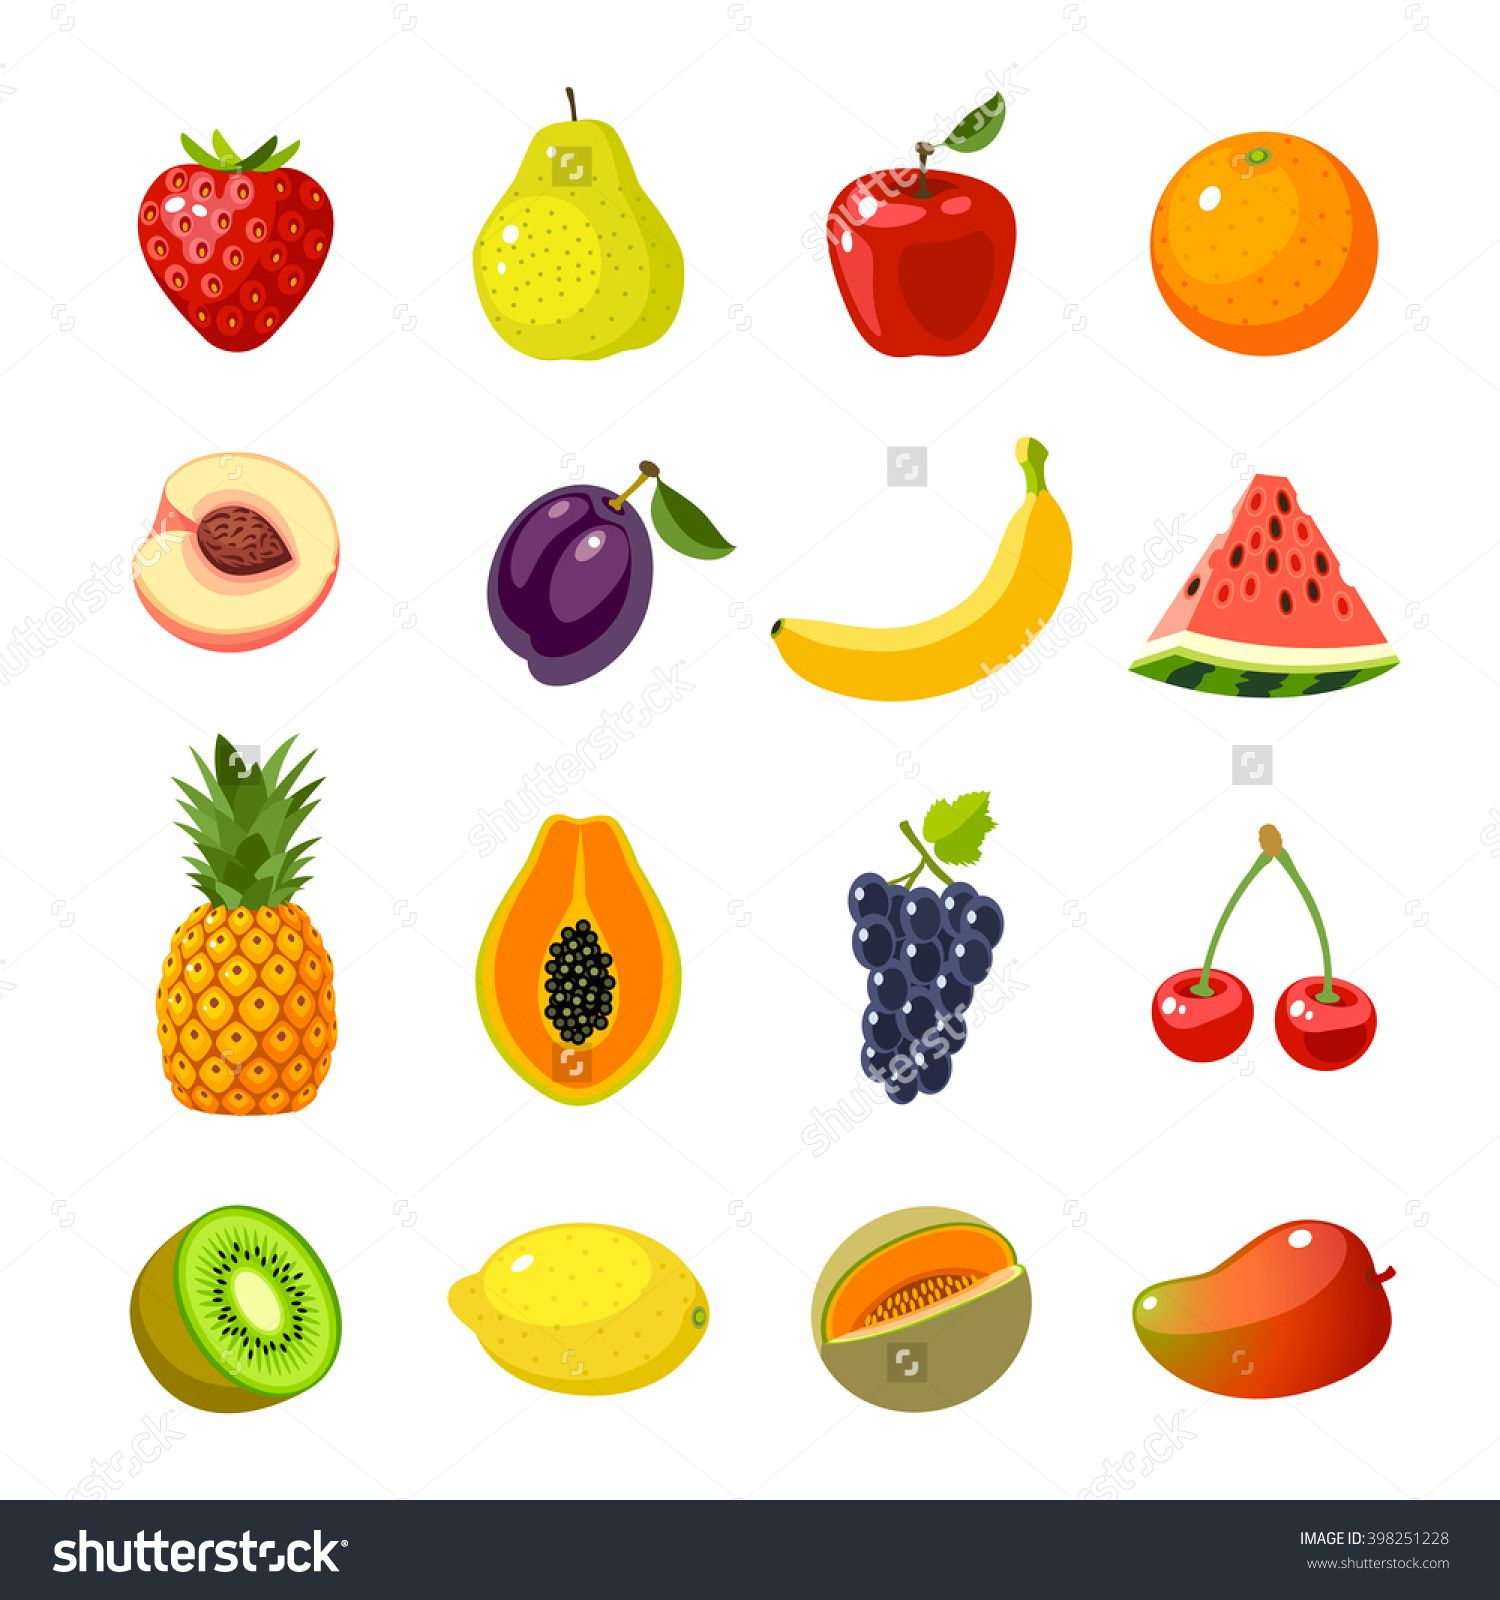 Set of colorful cartoon fruit icons apple, pear